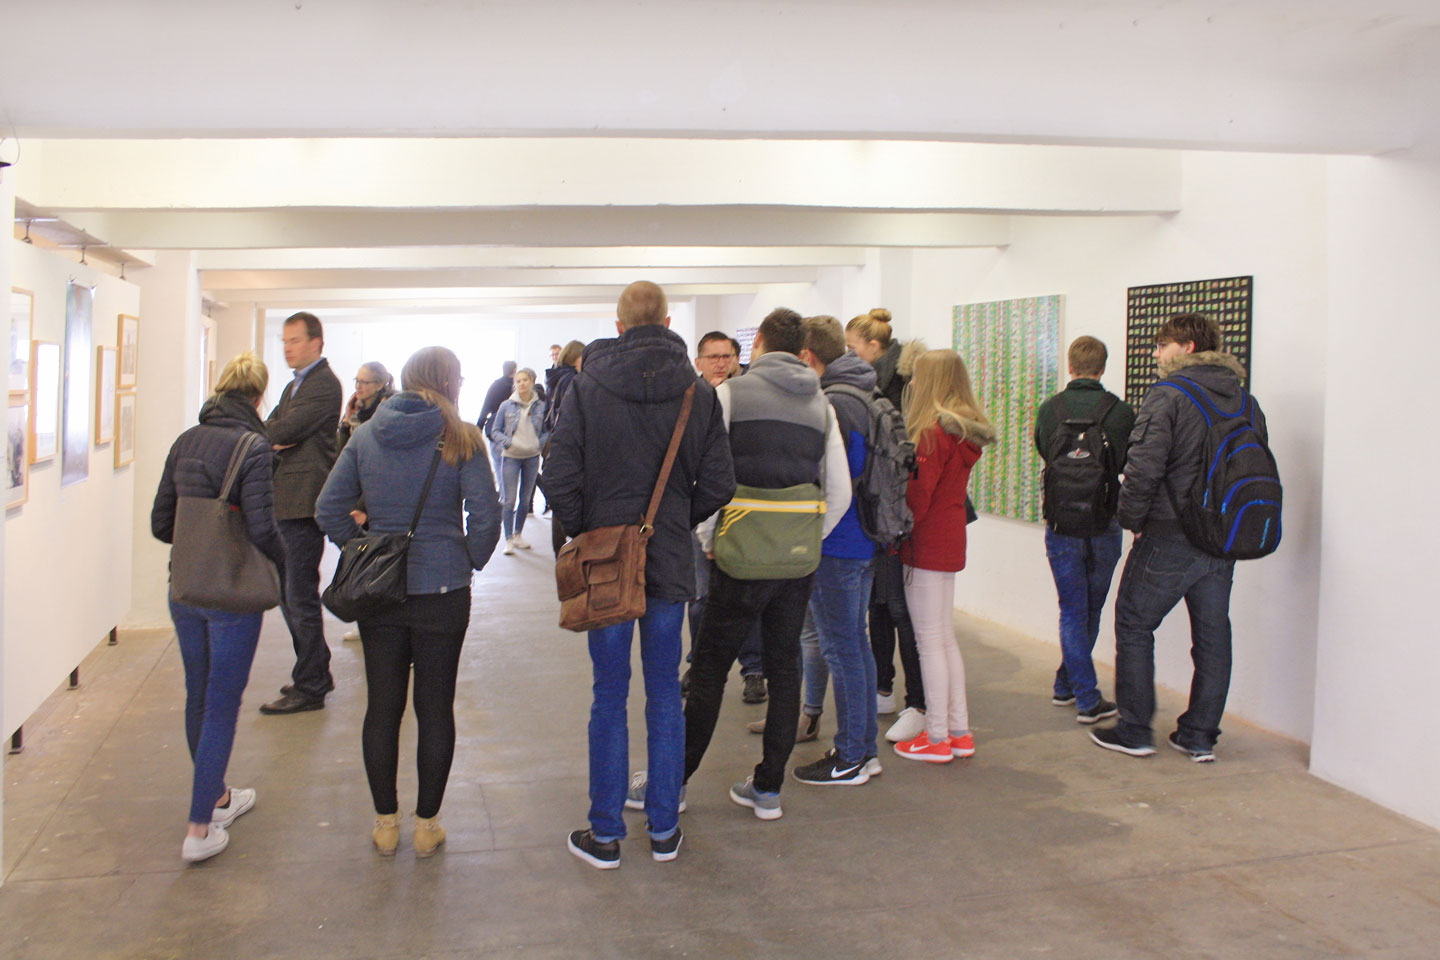 Vernissage; Exhibition TRACKS:FINDER; Ausstellung SPUREN:FINDER; Norbert Klora; Burchard Vossmann